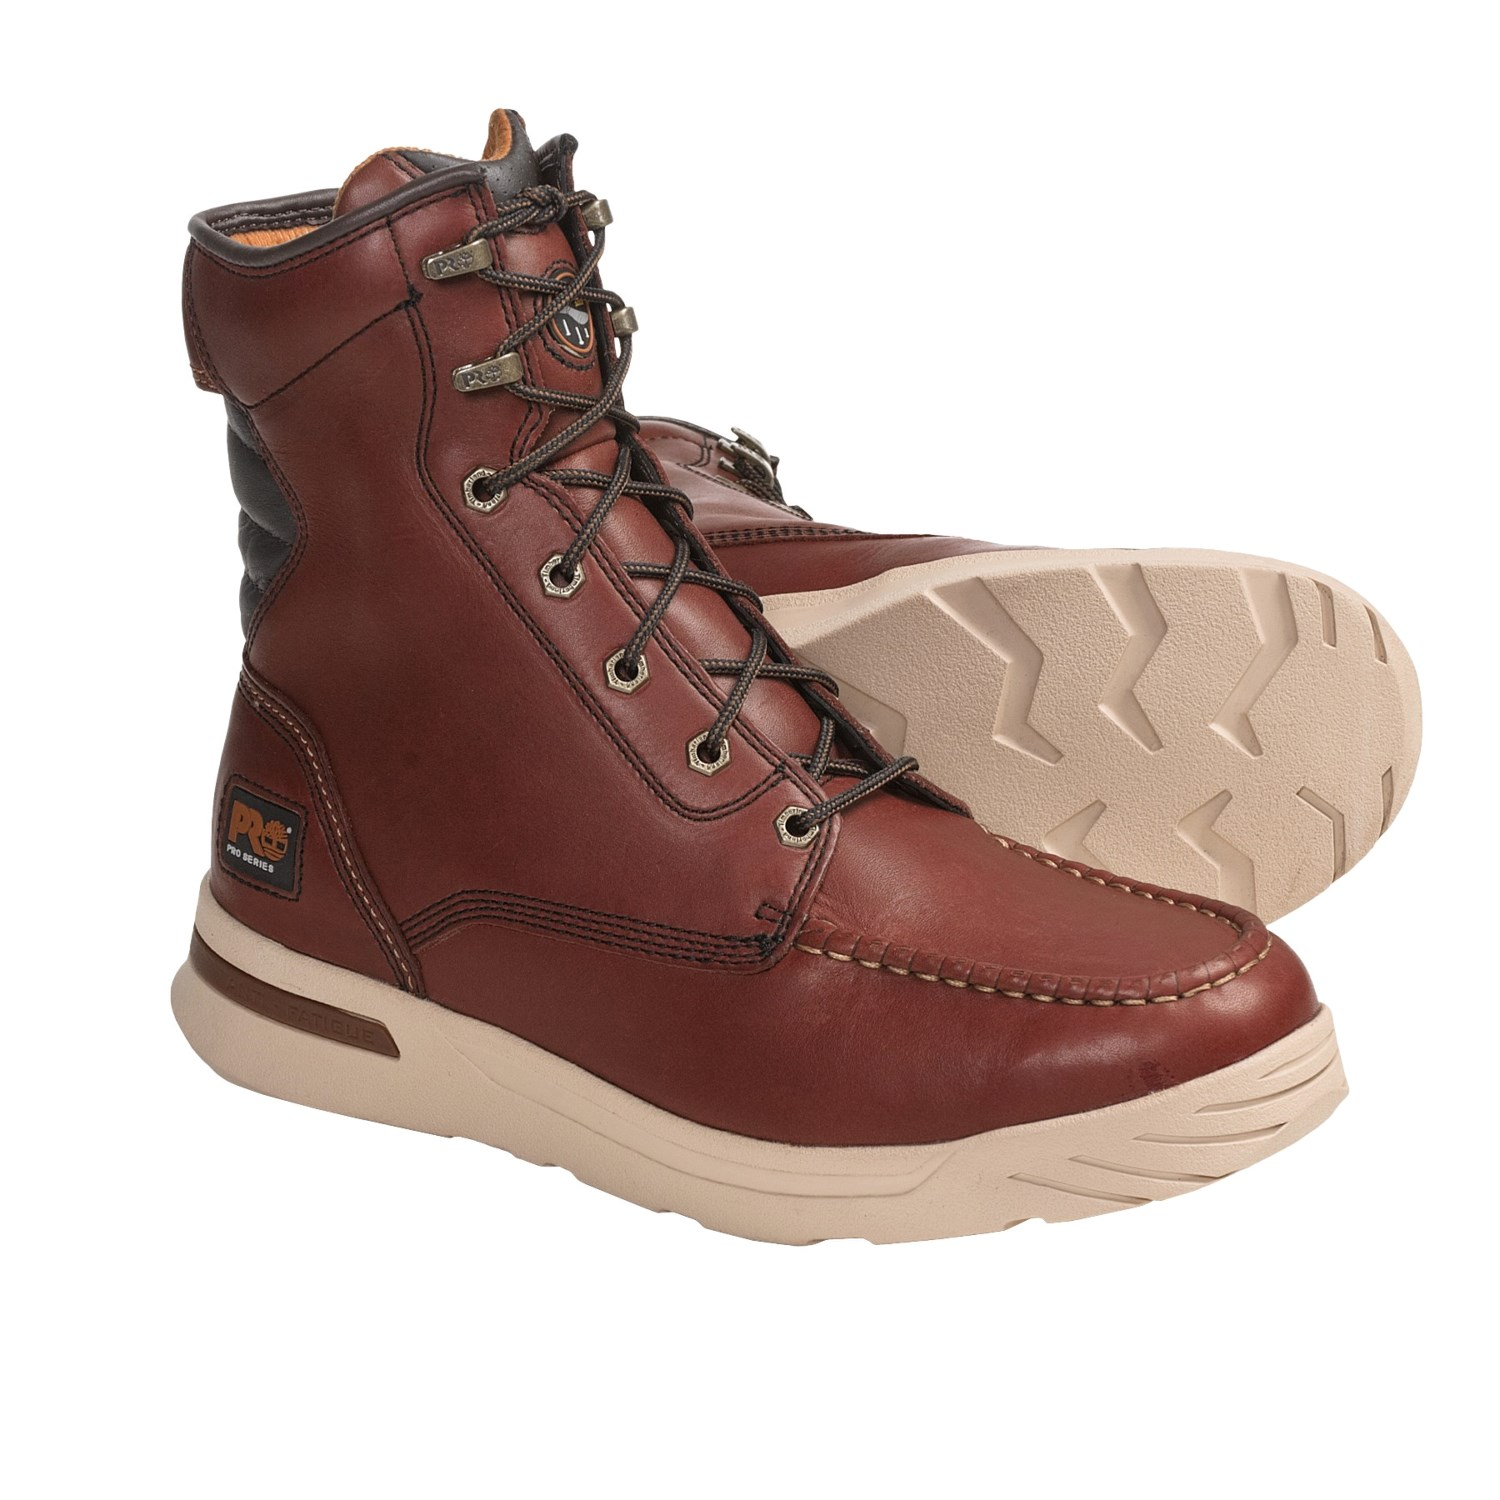 timberland look alike work boots - StartOrganic Vegetable Garden ...